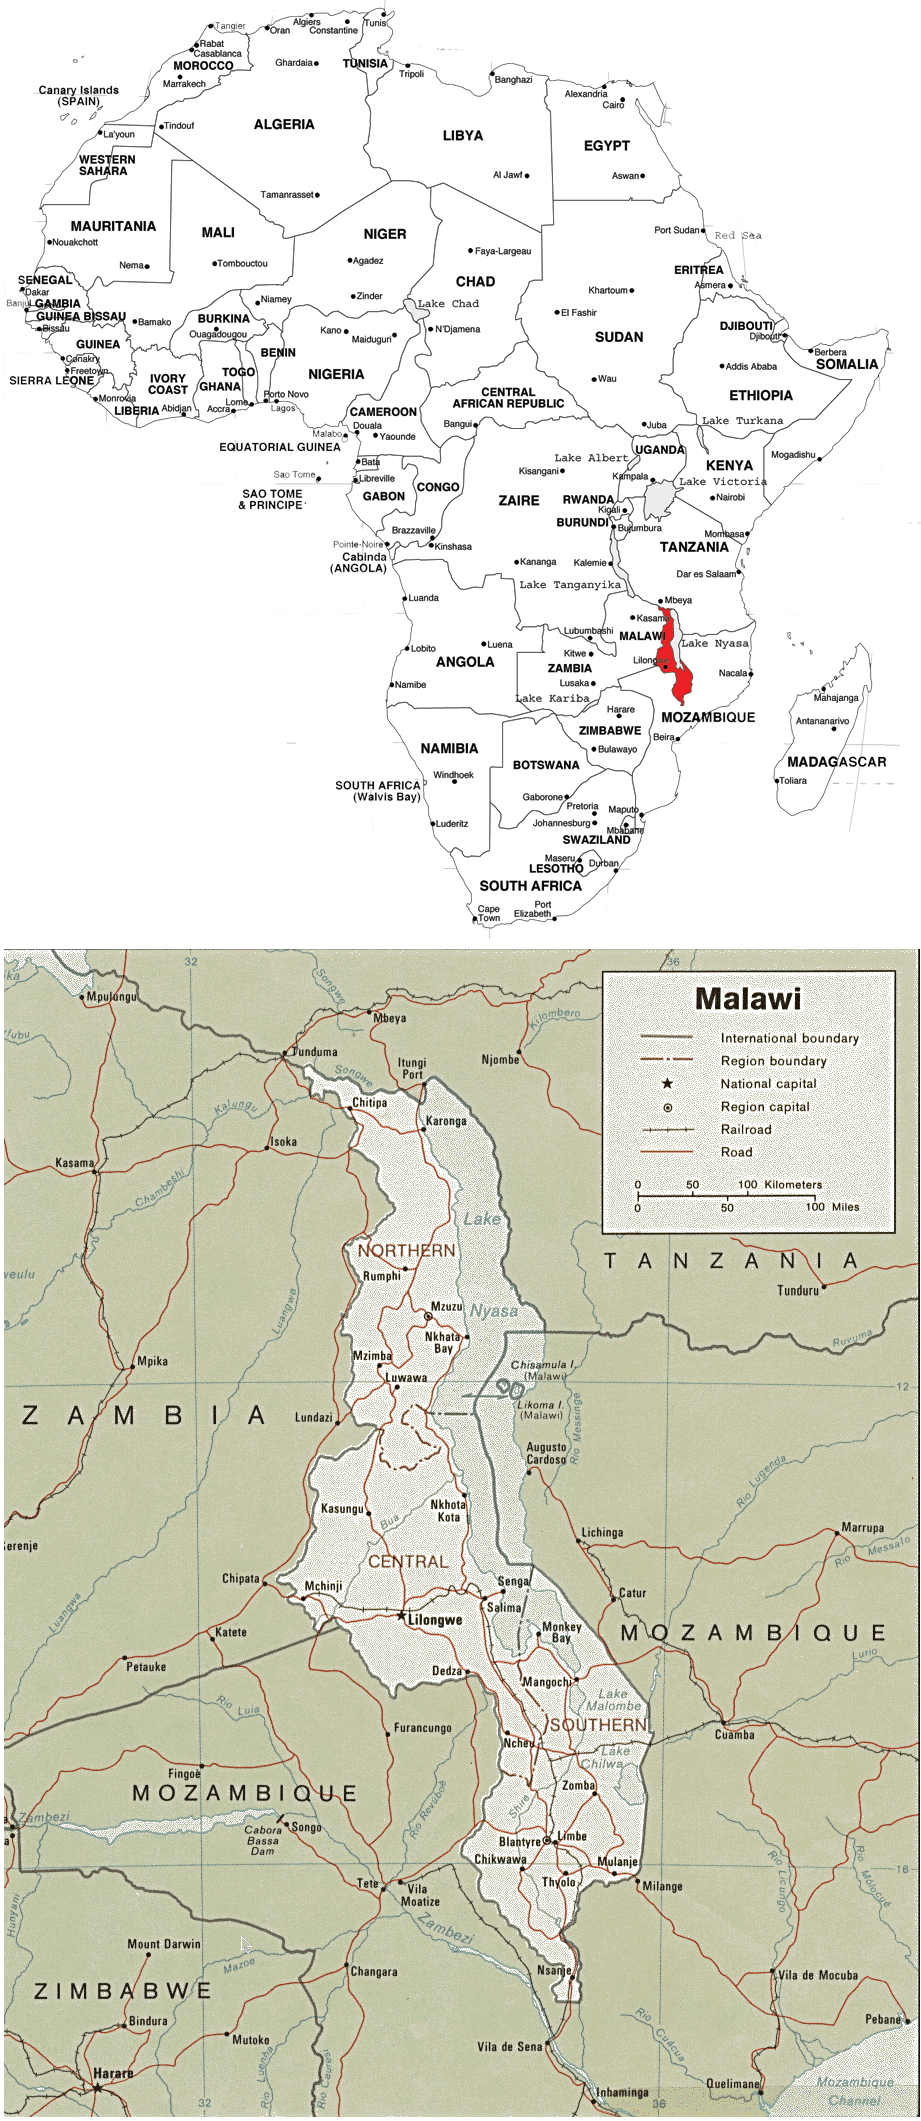 "• MALAWI, a country slightly smaller than Pennsylvania, is located in East-Central, Sub-Saharan Africa. • Population is 15 million--one of the continent's most densely populated countries • 75% rural, 25% urban--half the population is under 18 years of age. • 75% live in extreme poverty ($1.25 per day) • 65% are unable to meet their basic needs • Vast majority are subsistence farmers (""if they don't grow it; they don't have it."") • Only 36% have access to safe water • Only 8% have access to electricity • Estimated HIV infection rate among adults (age 15-49) is 10.6% Click here for a detailed Malawi Country Profile"